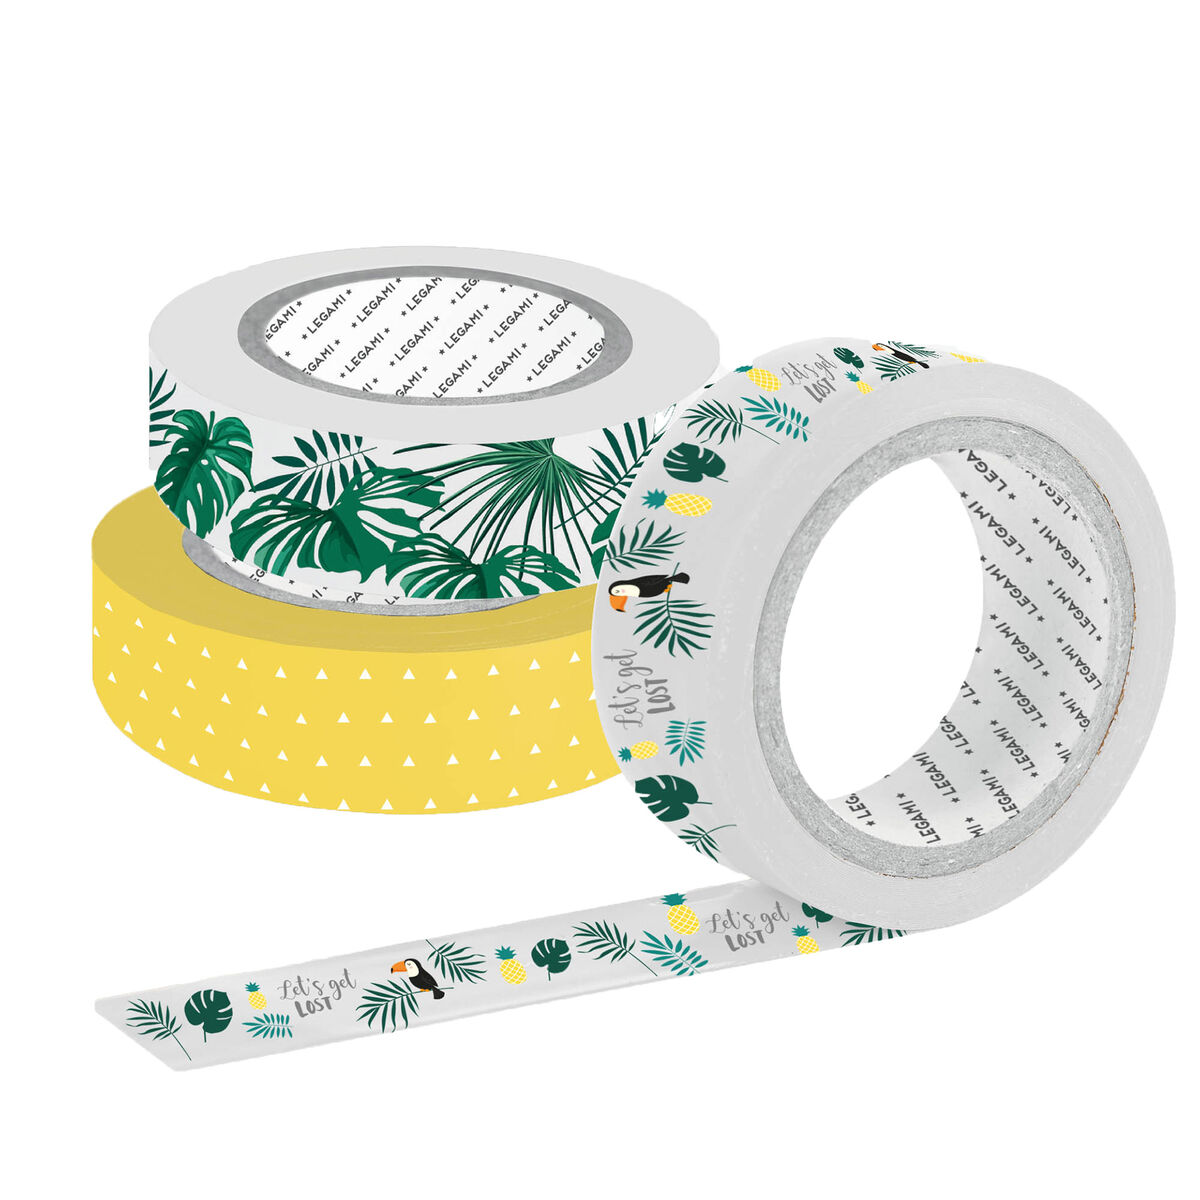 Tape By Tape - Set Of 3 Dream Paper Tapes, , zoom